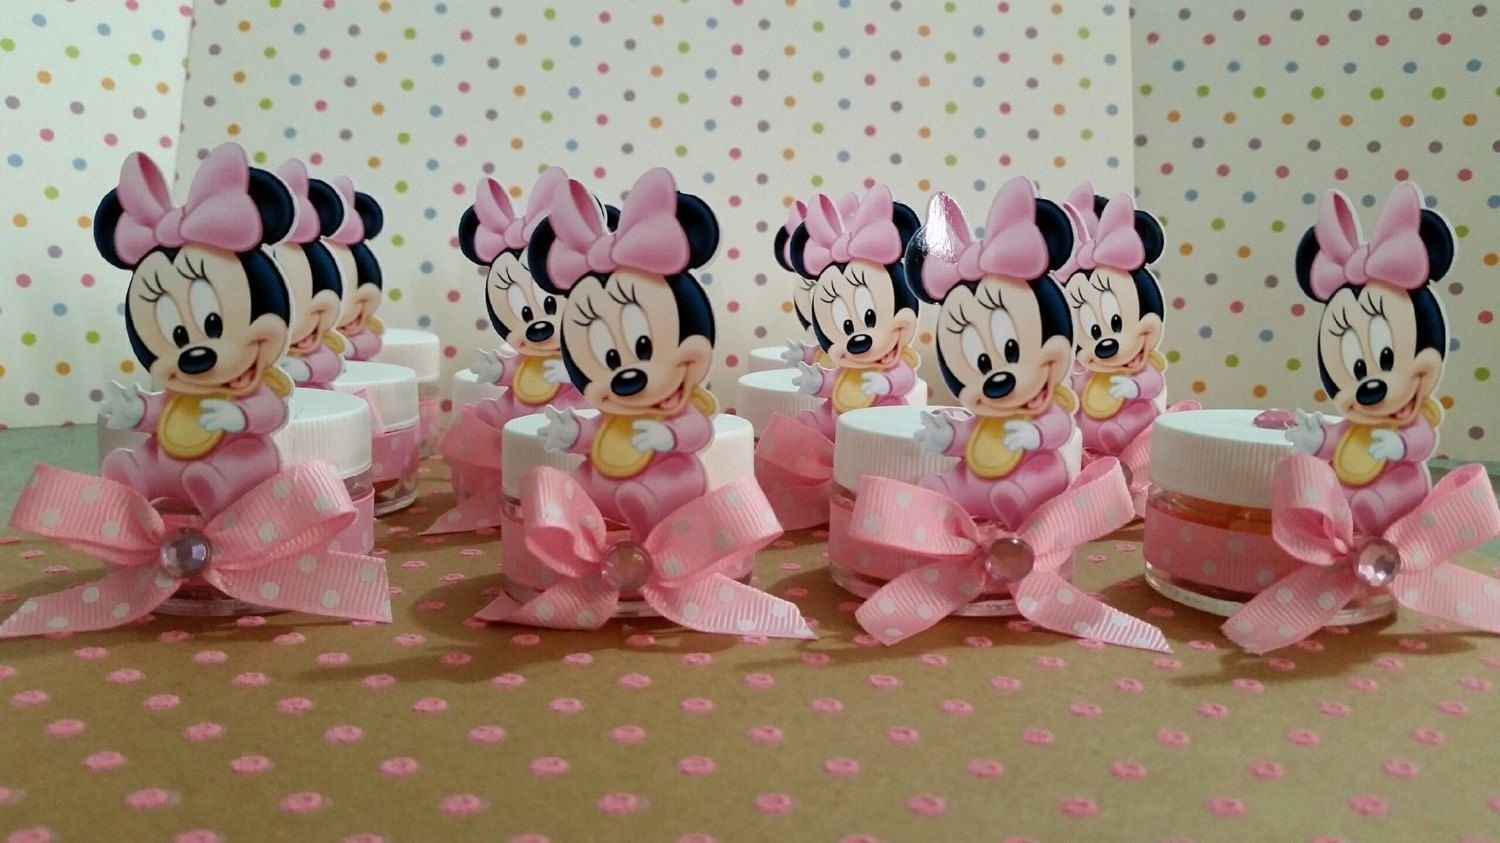 10 Wonderful Baby Minnie Mouse Baby Shower Ideas baby minnie mouse baby shower party favors baby shower favors 2020